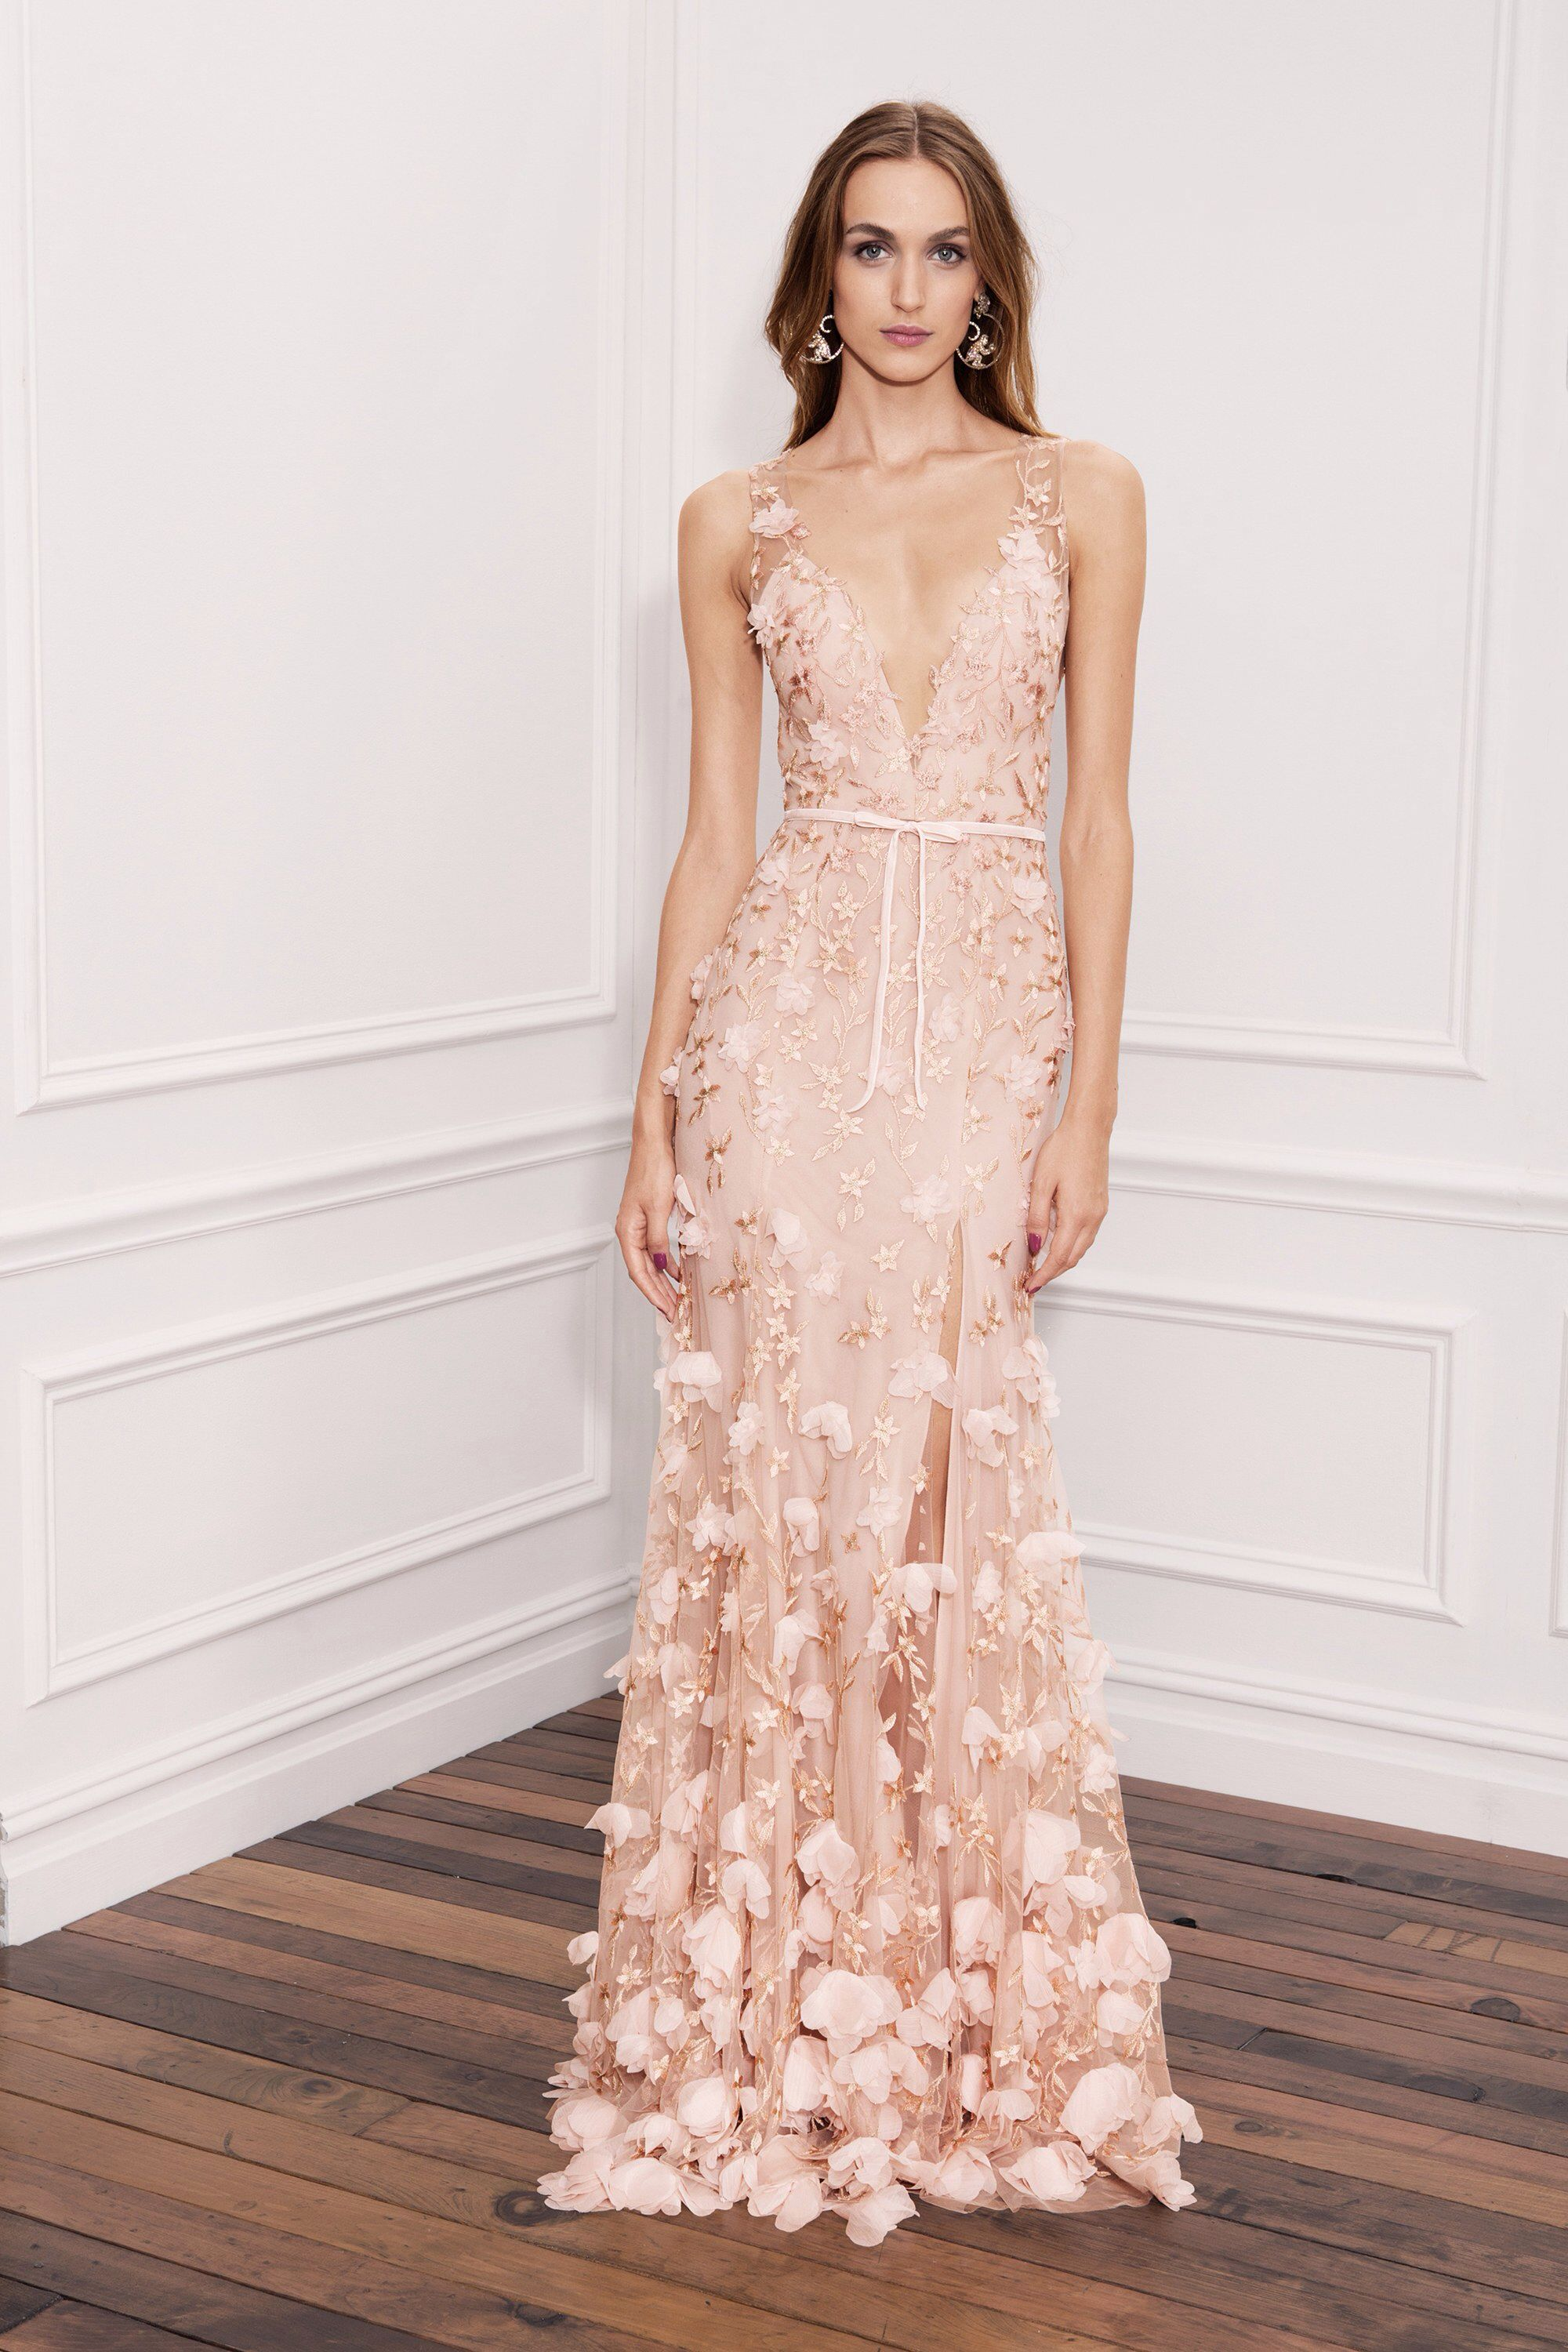 Marchesa Notte Spring 2018 Ready-to-Wear Fashion Show | Alta costura ...